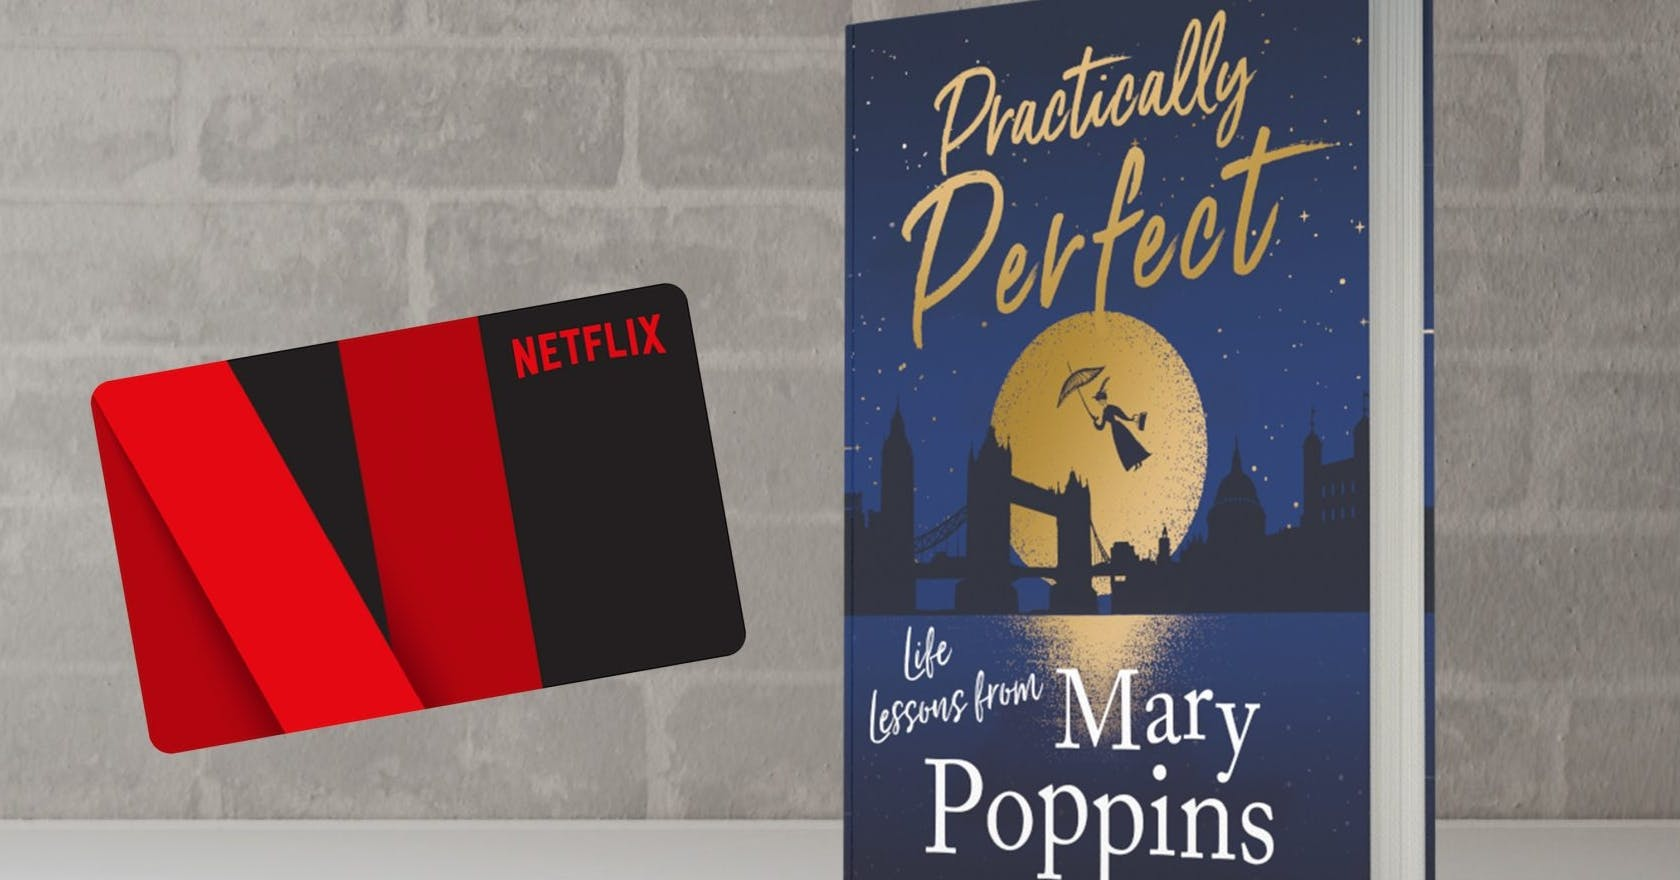 Win a £100 Netflix gift card and a copy of Practically Perfect by Katy Brand